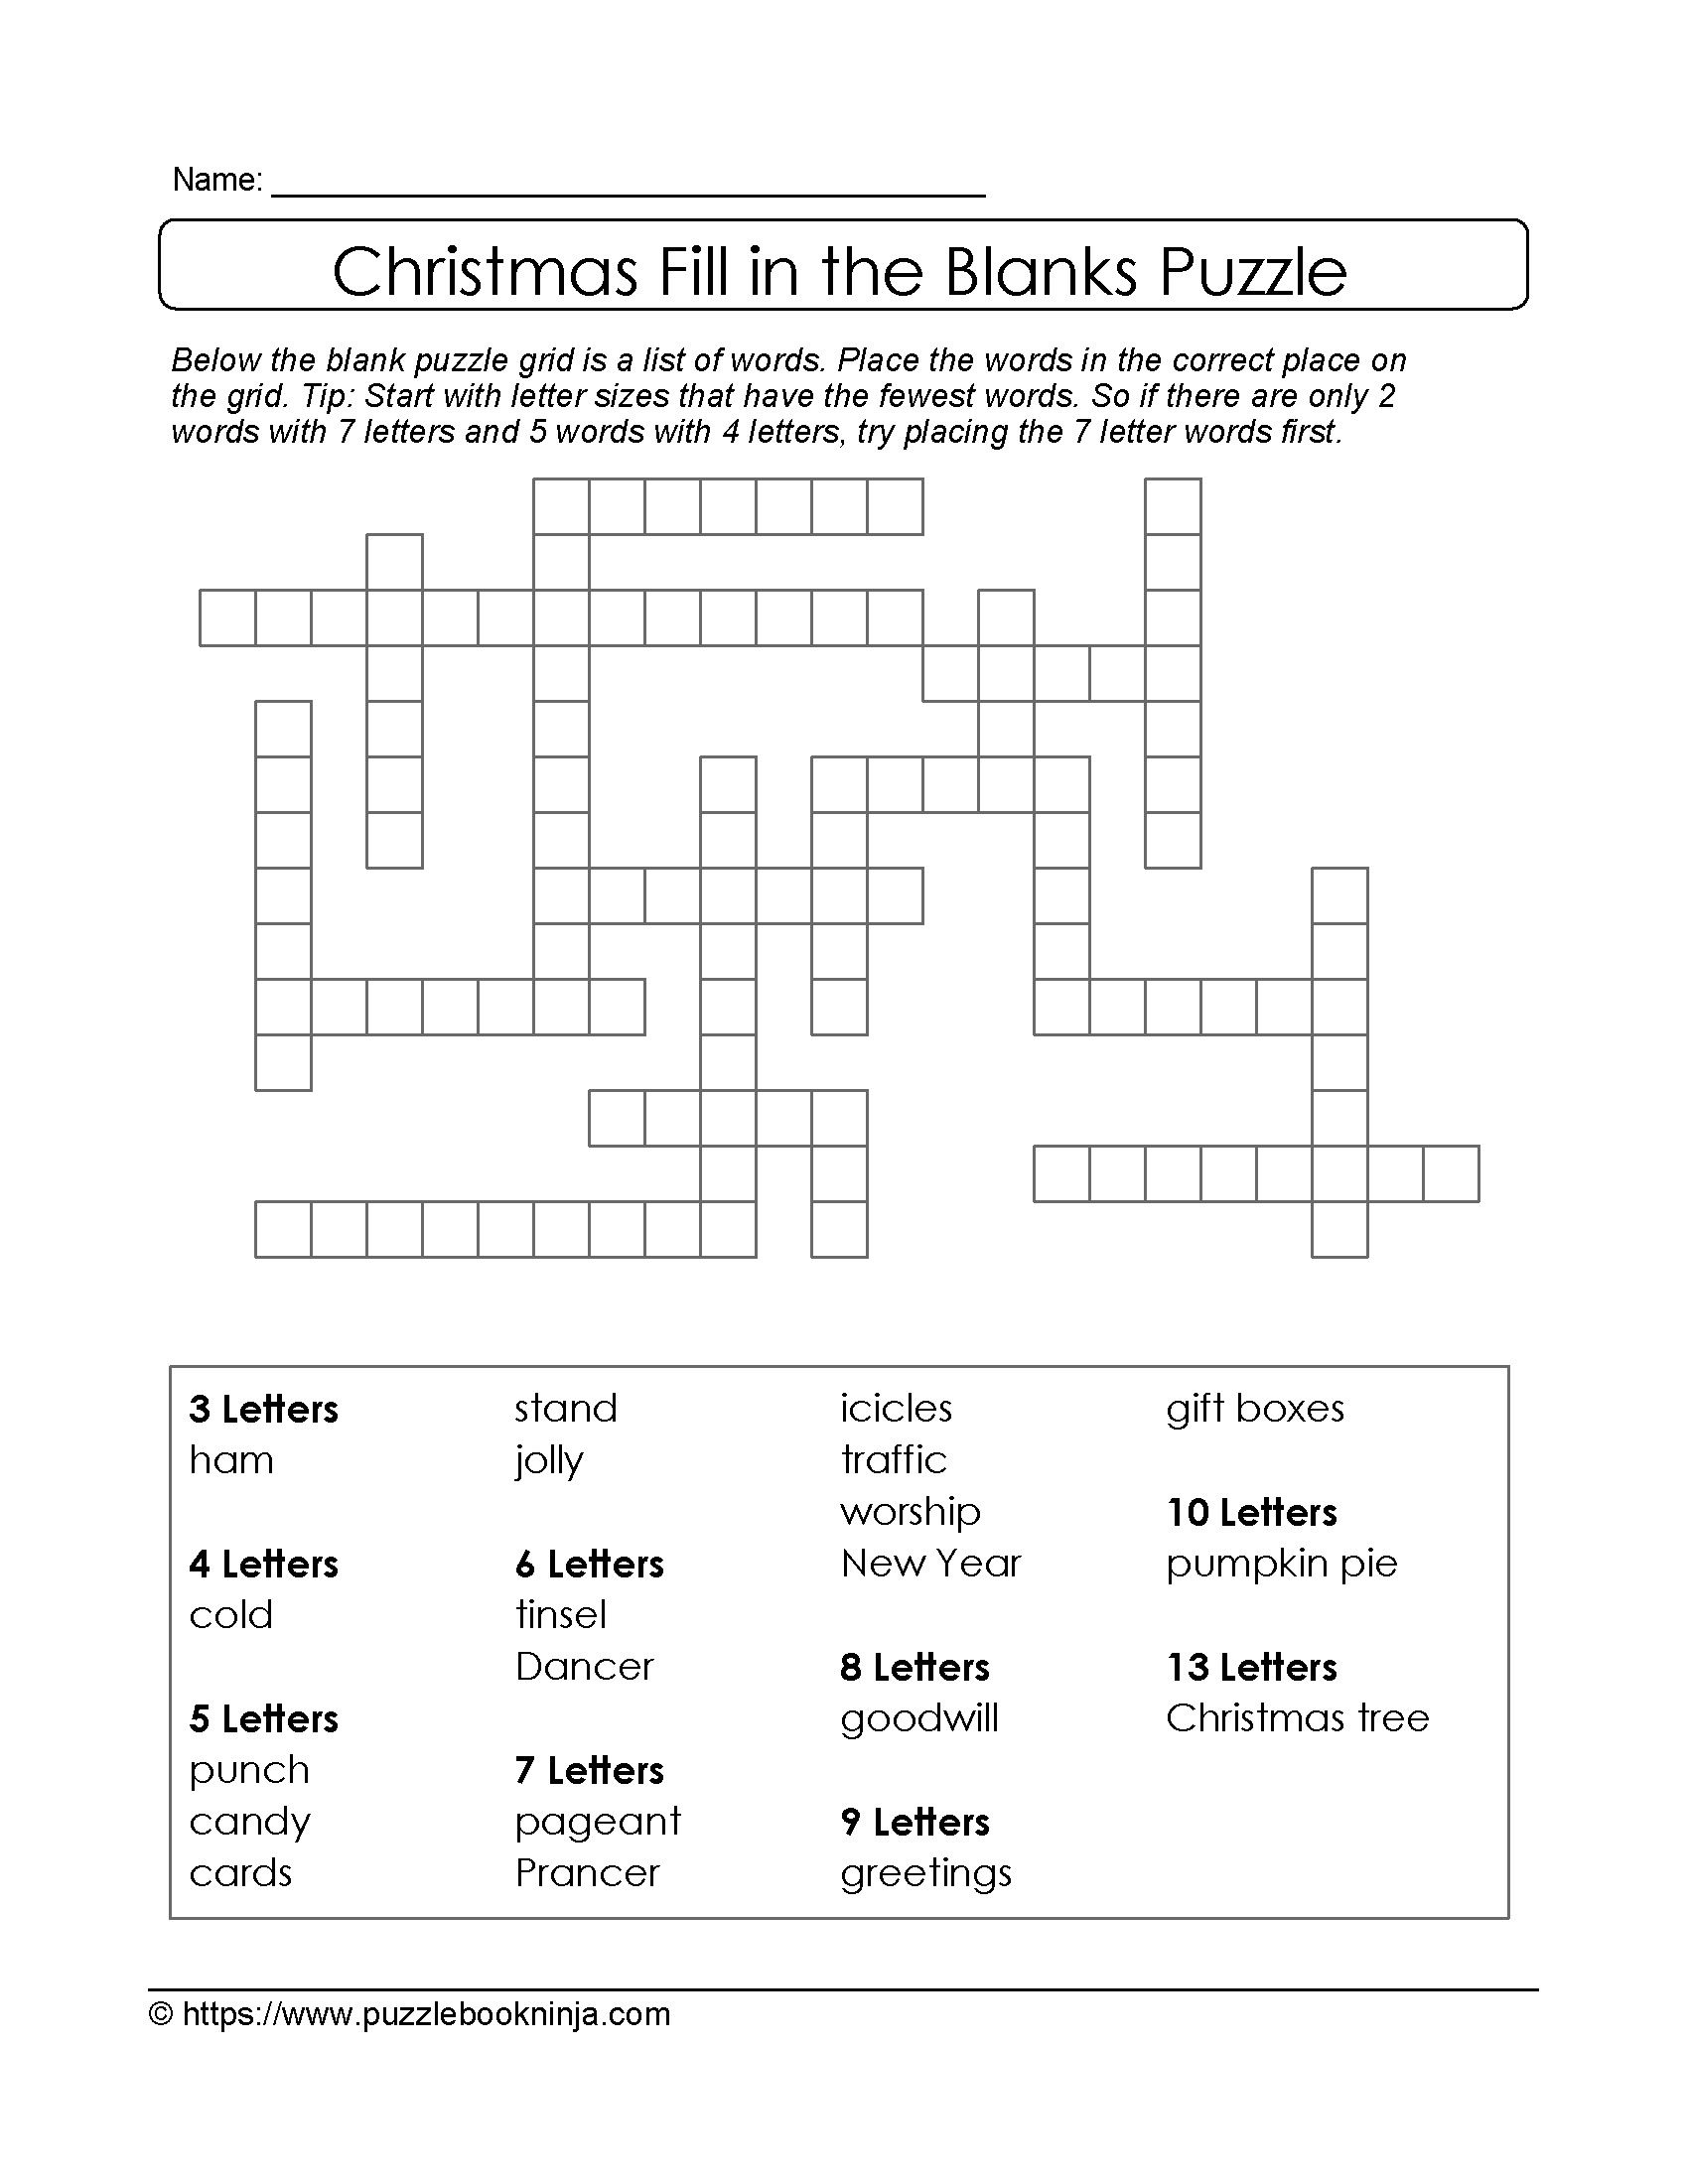 Freebie Xmas Puzzle To Print. Fill In The Blanks Crossword Like - Printable Crossword Puzzles On Anger Management